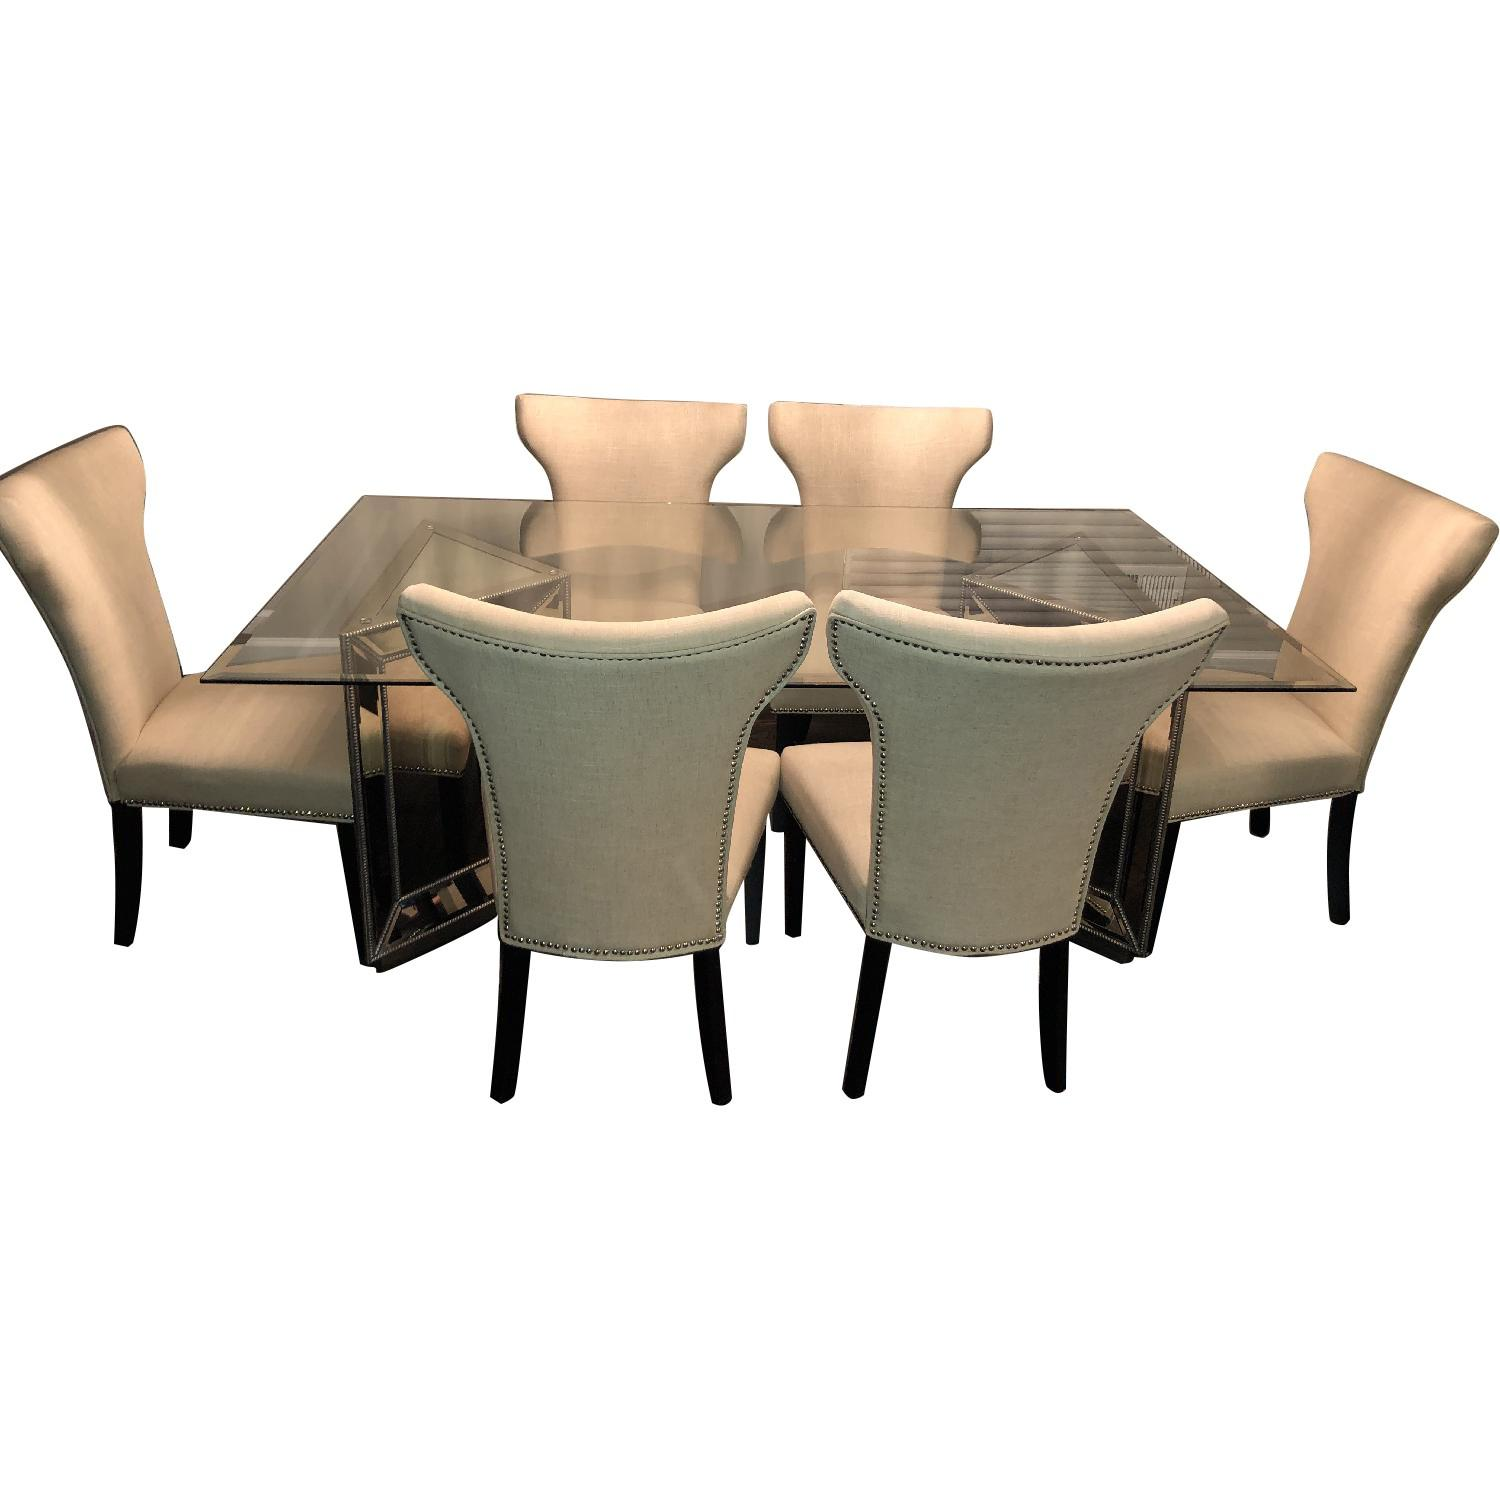 Macy's Contemporary Glass Dining Table w/ 6 Chairs